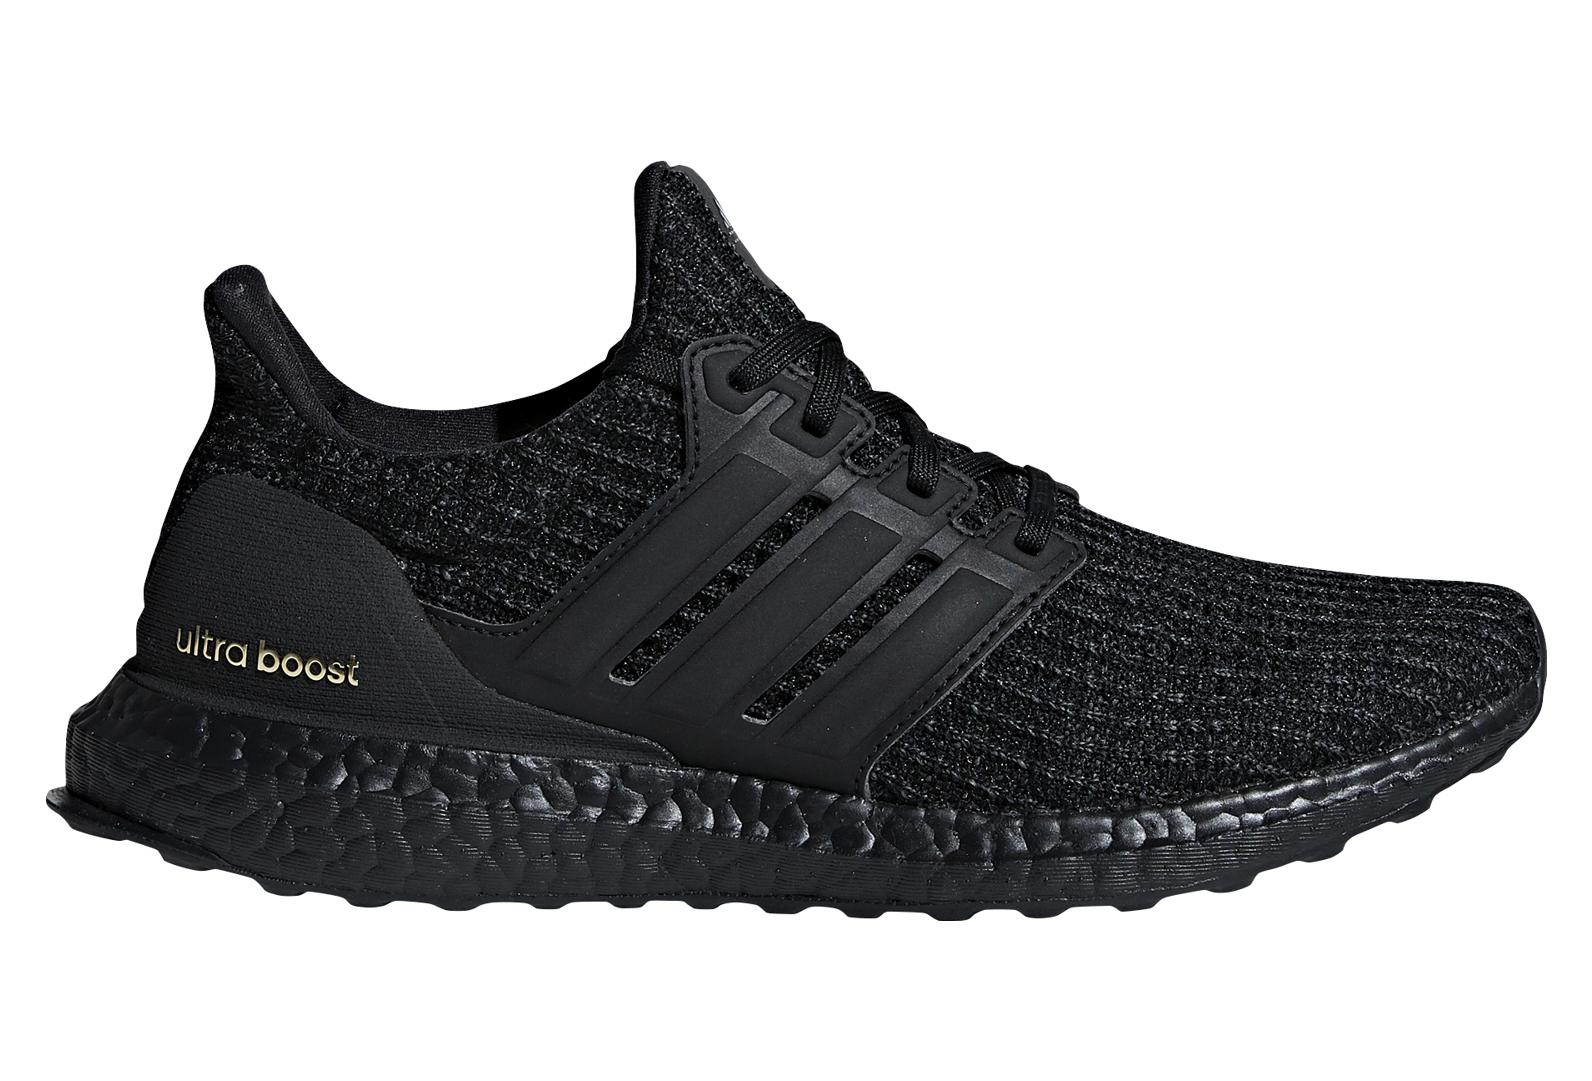 newest deb3c 26965 Adidas UltraBOOST Women's Shoes Black